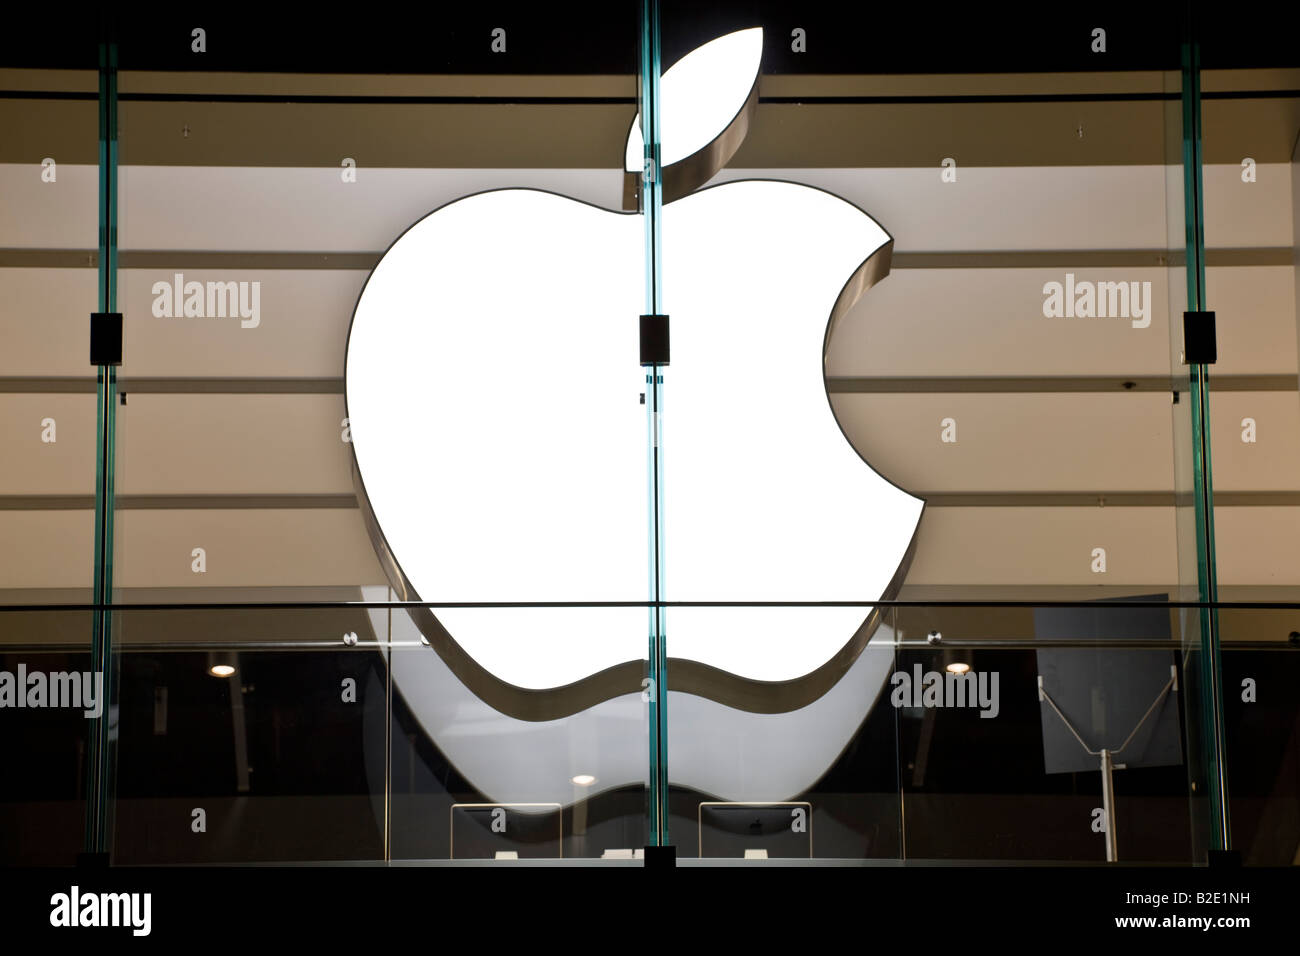 Apple inc. logo, Boston store, Massachusetts, USA - Stock Image